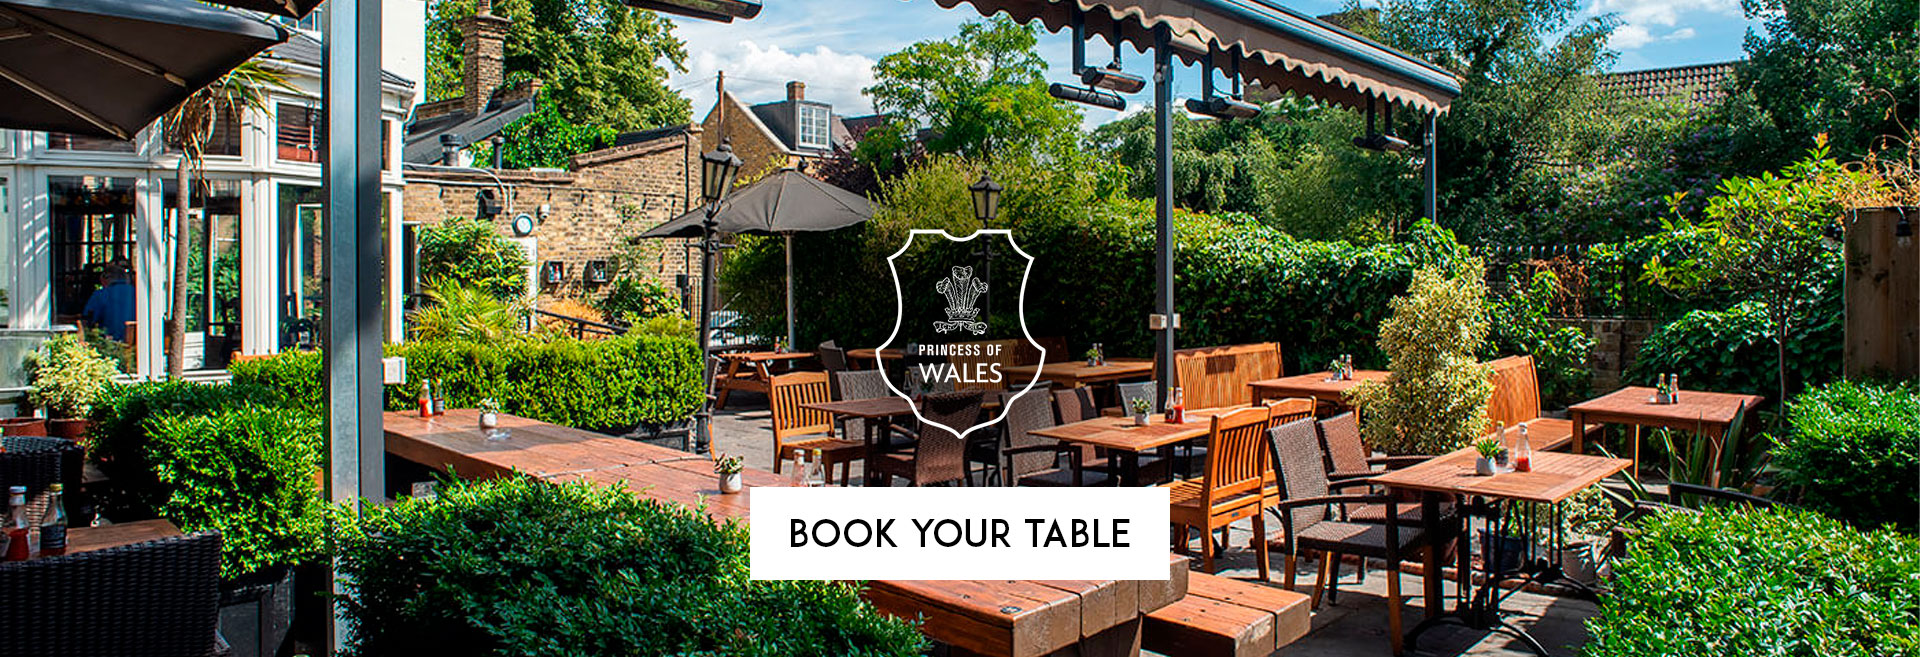 Book Your Table at The Princess Of Wales